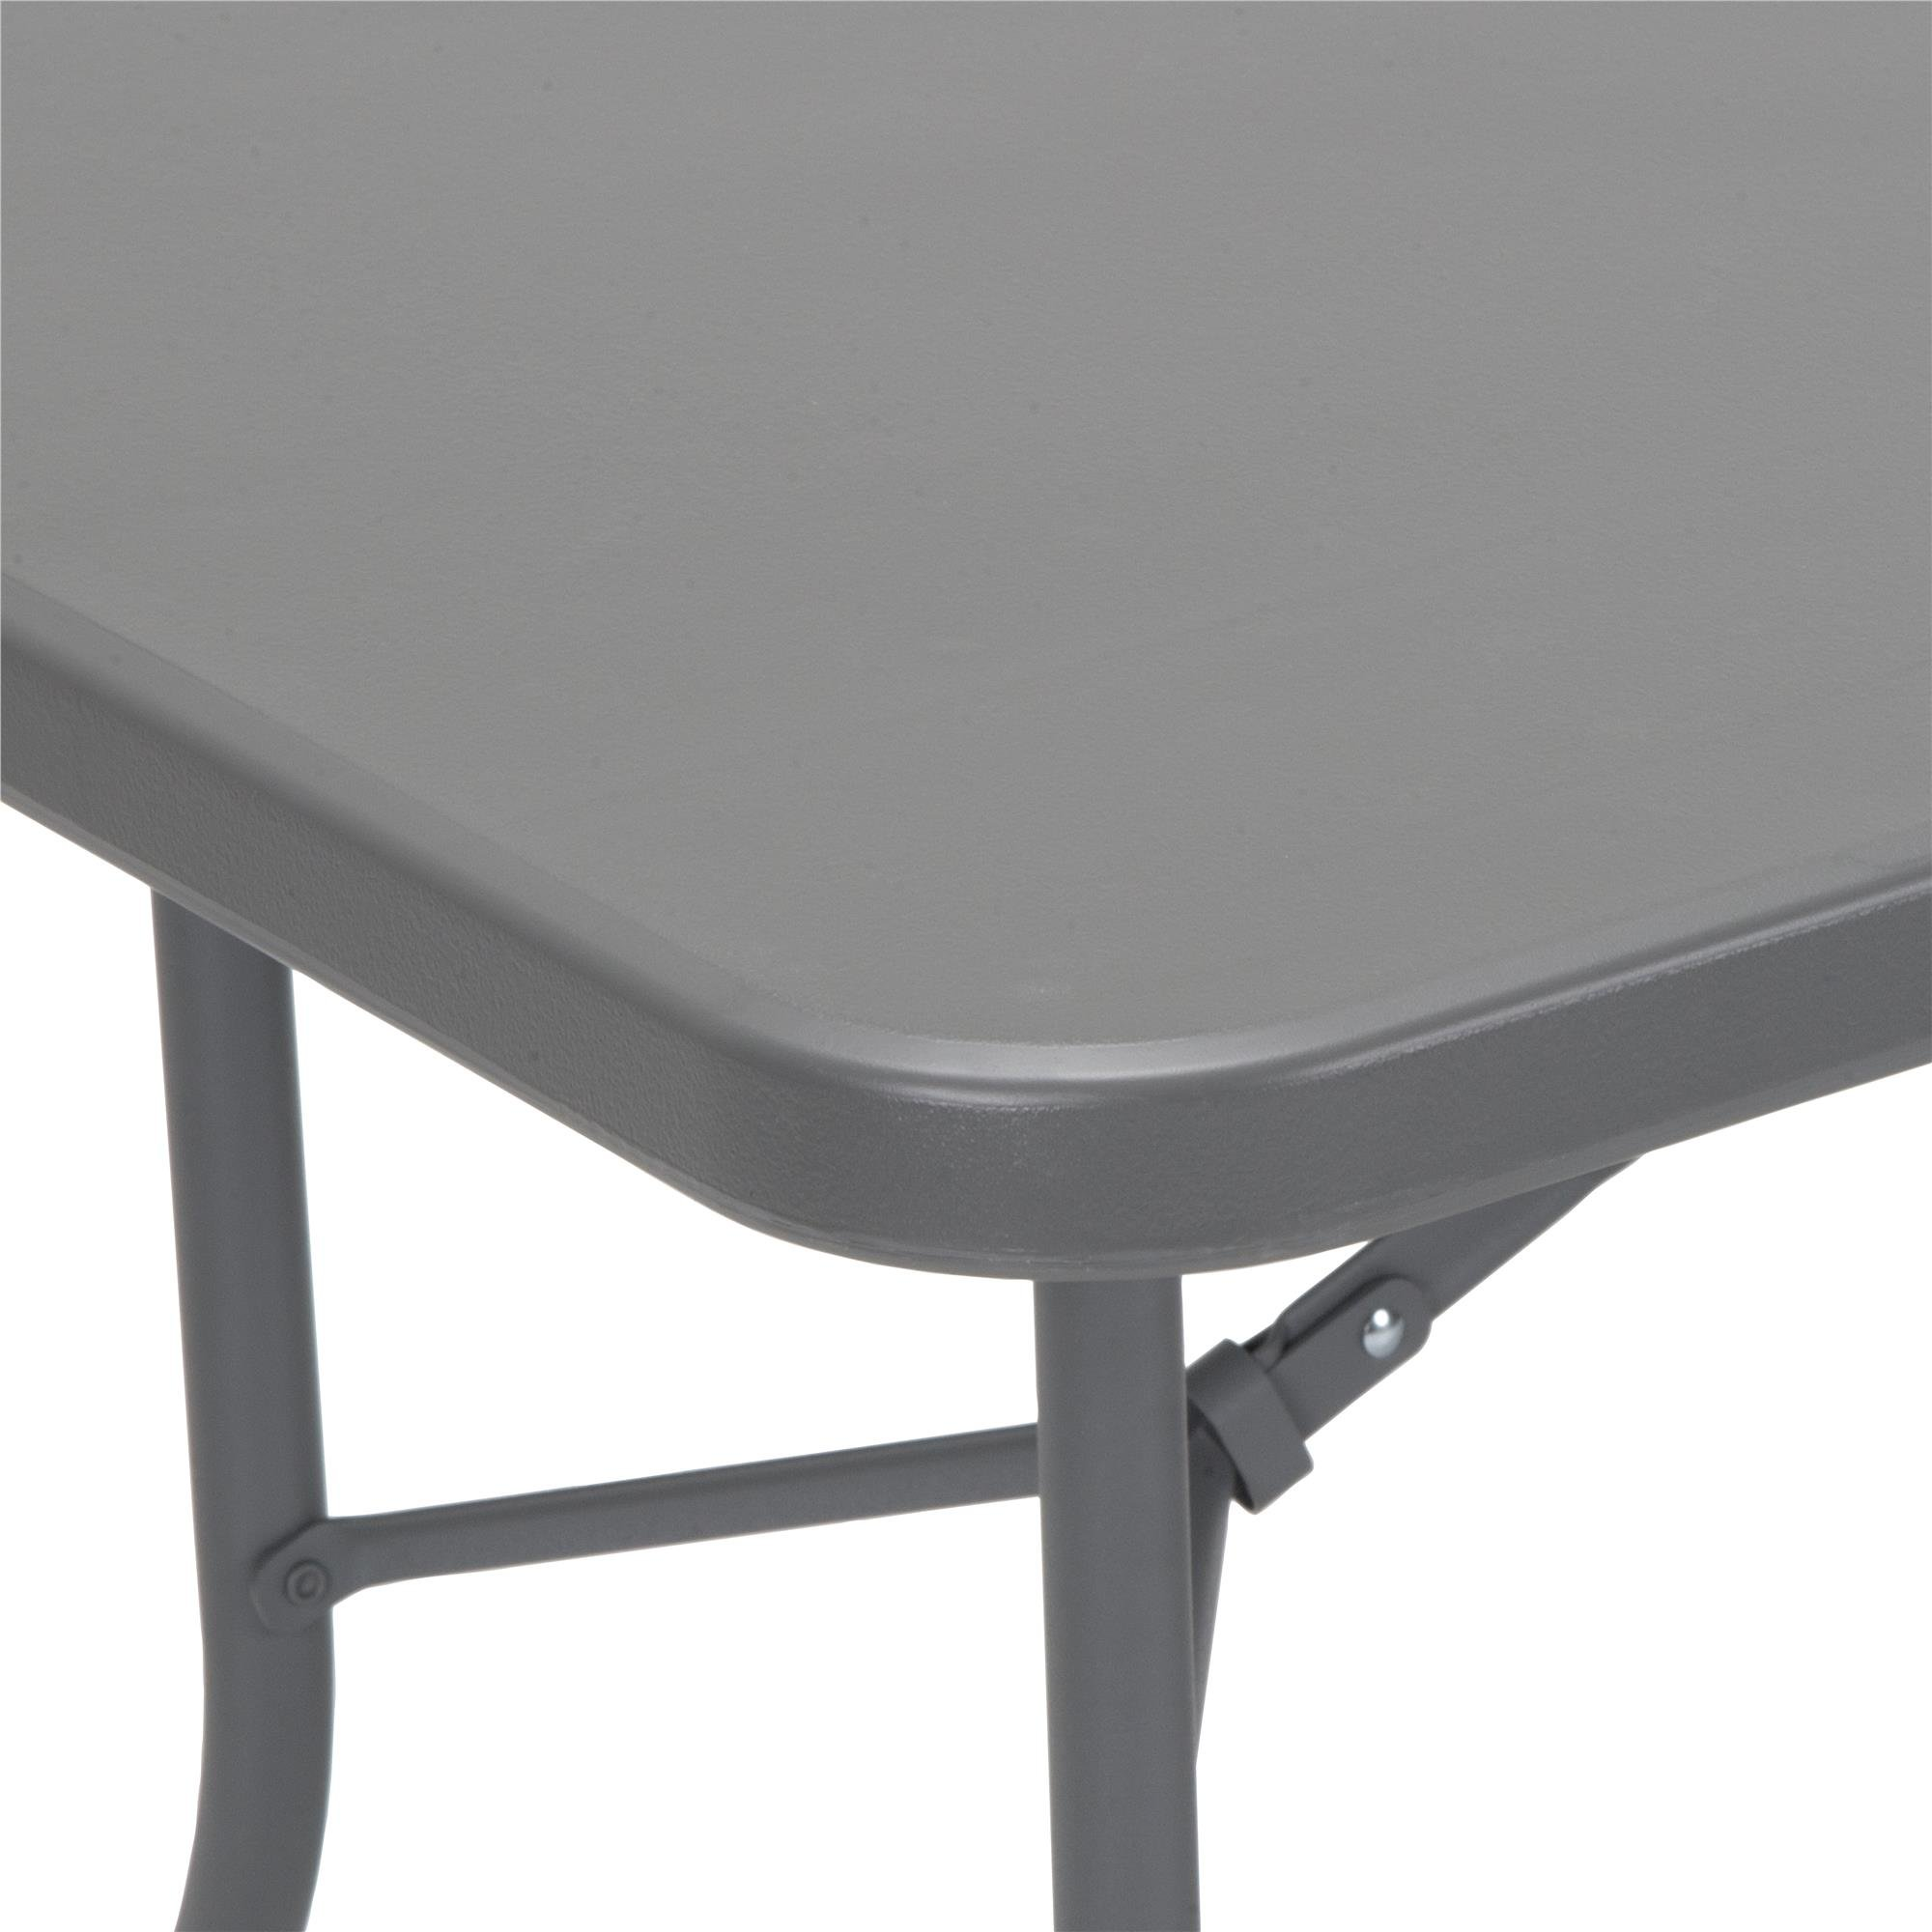 Cosco 6' Signature Series Blow Mold Centerfold Table, Gray by Cosco (Image #13)